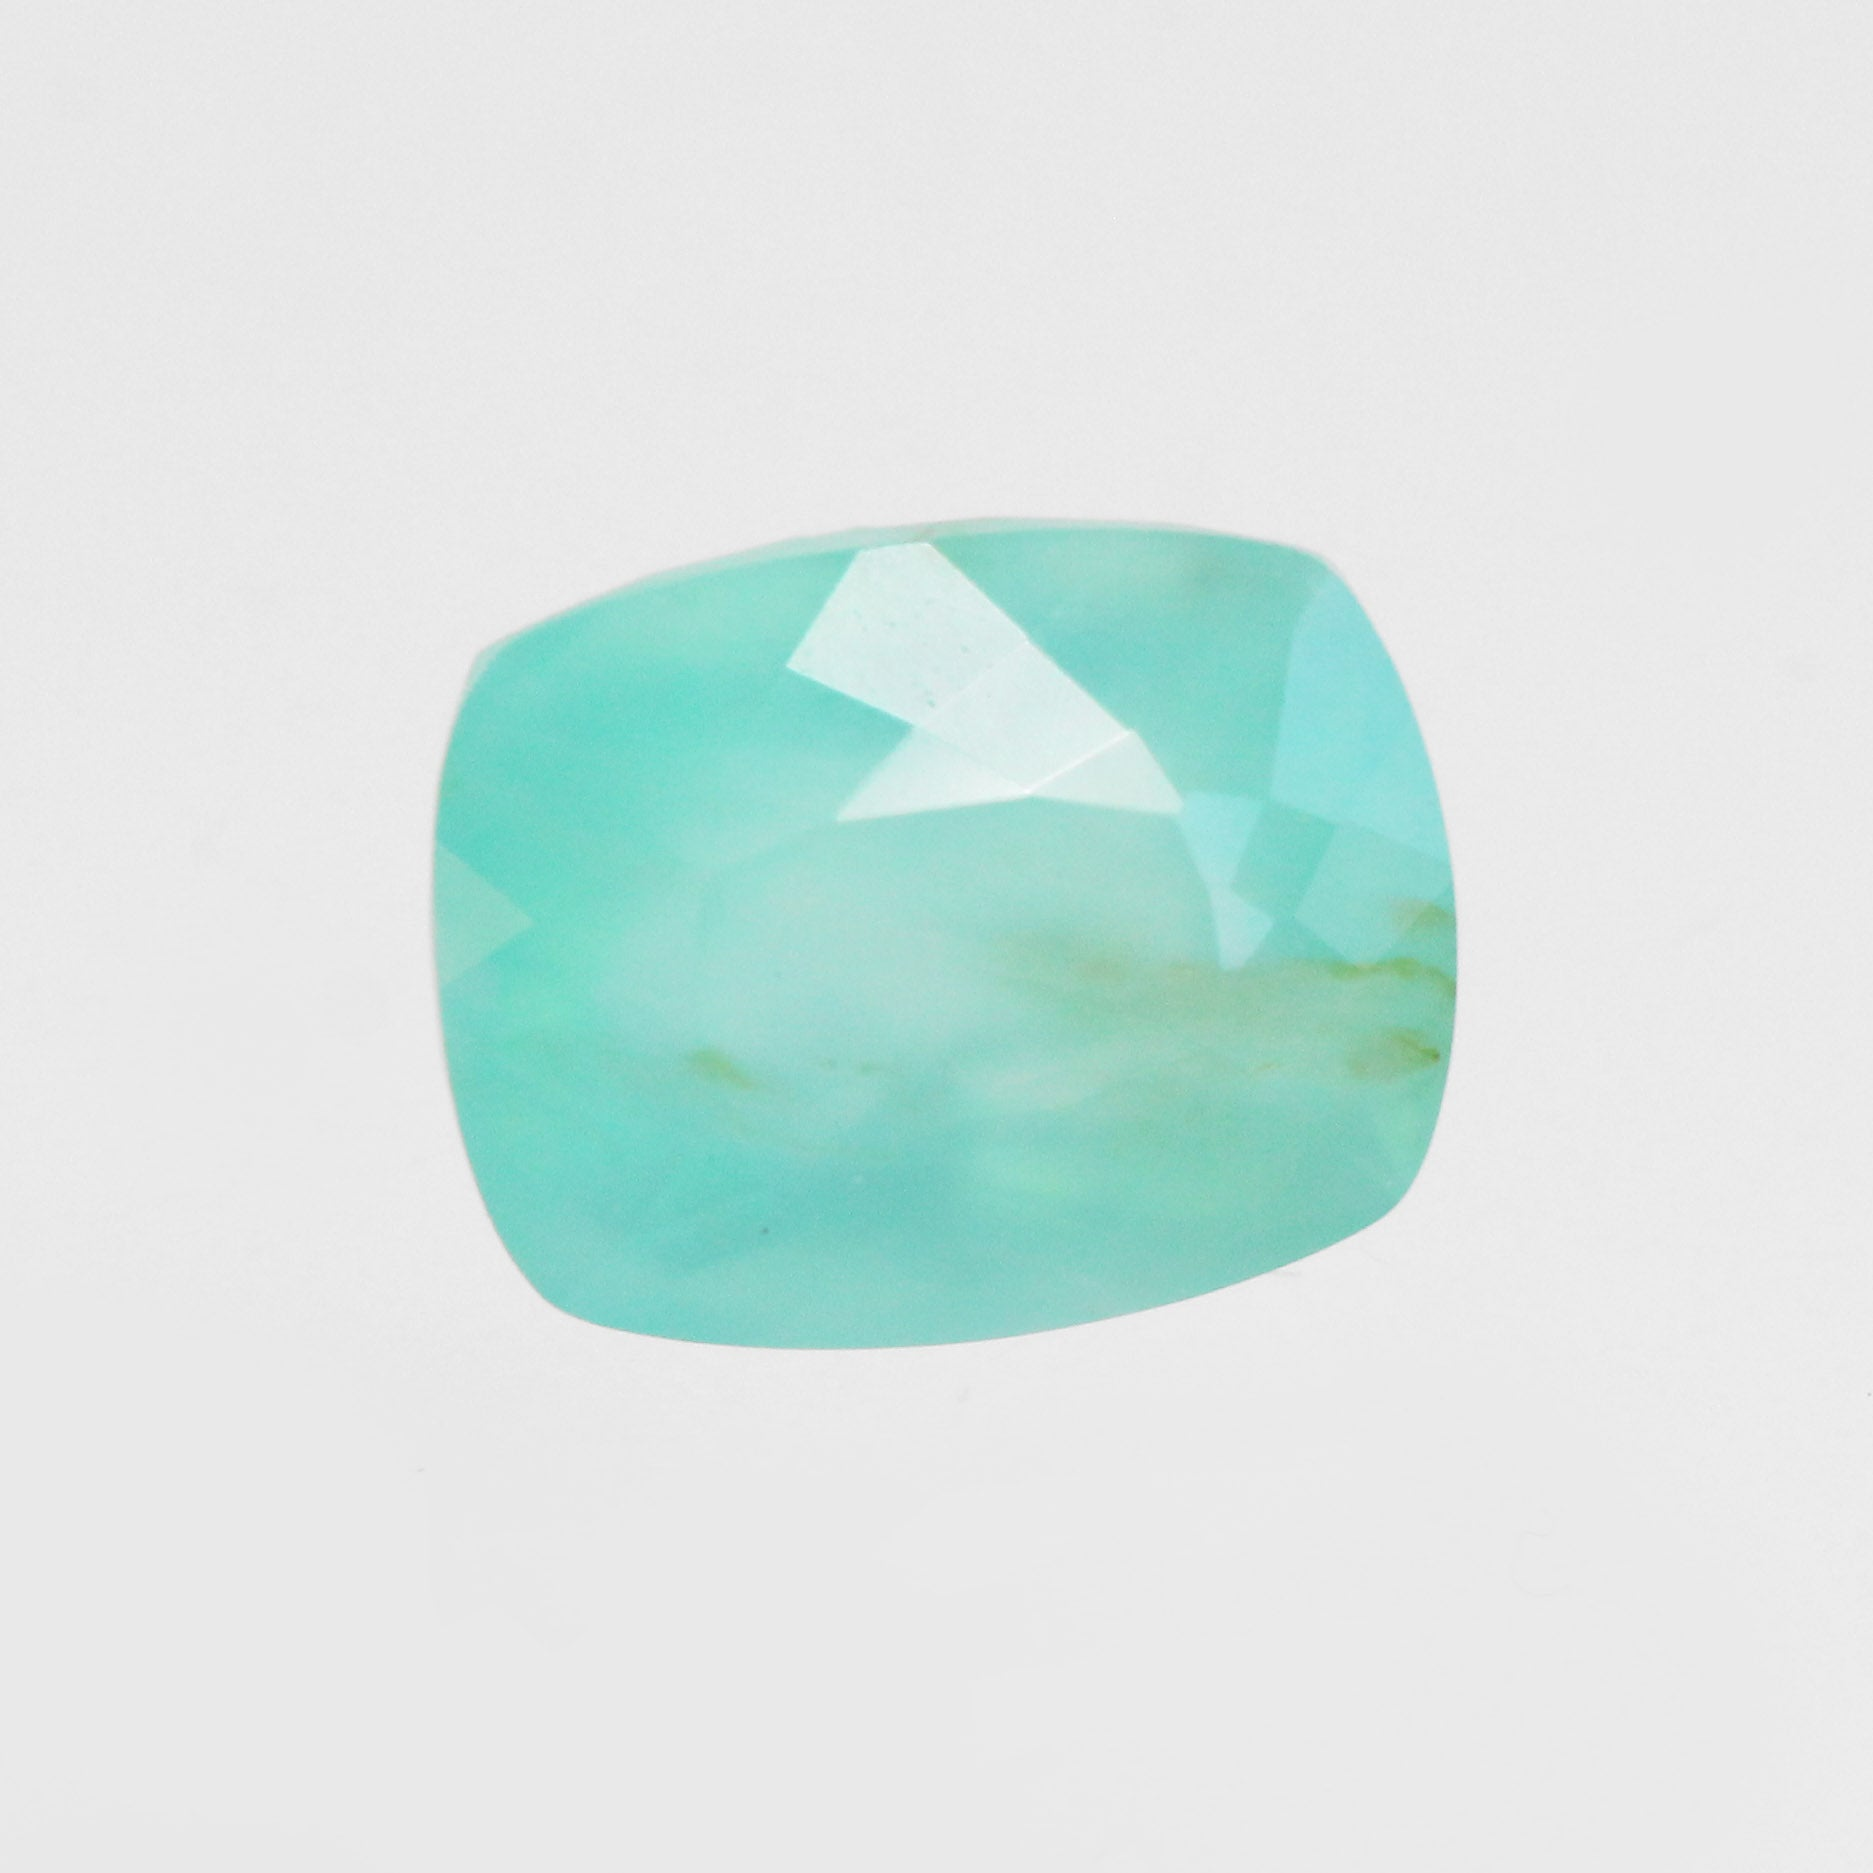 4.04ct Peruvian Opal for Custom Work - Inventory Code PO404 - Celestial Diamonds ® by Midwinter Co.